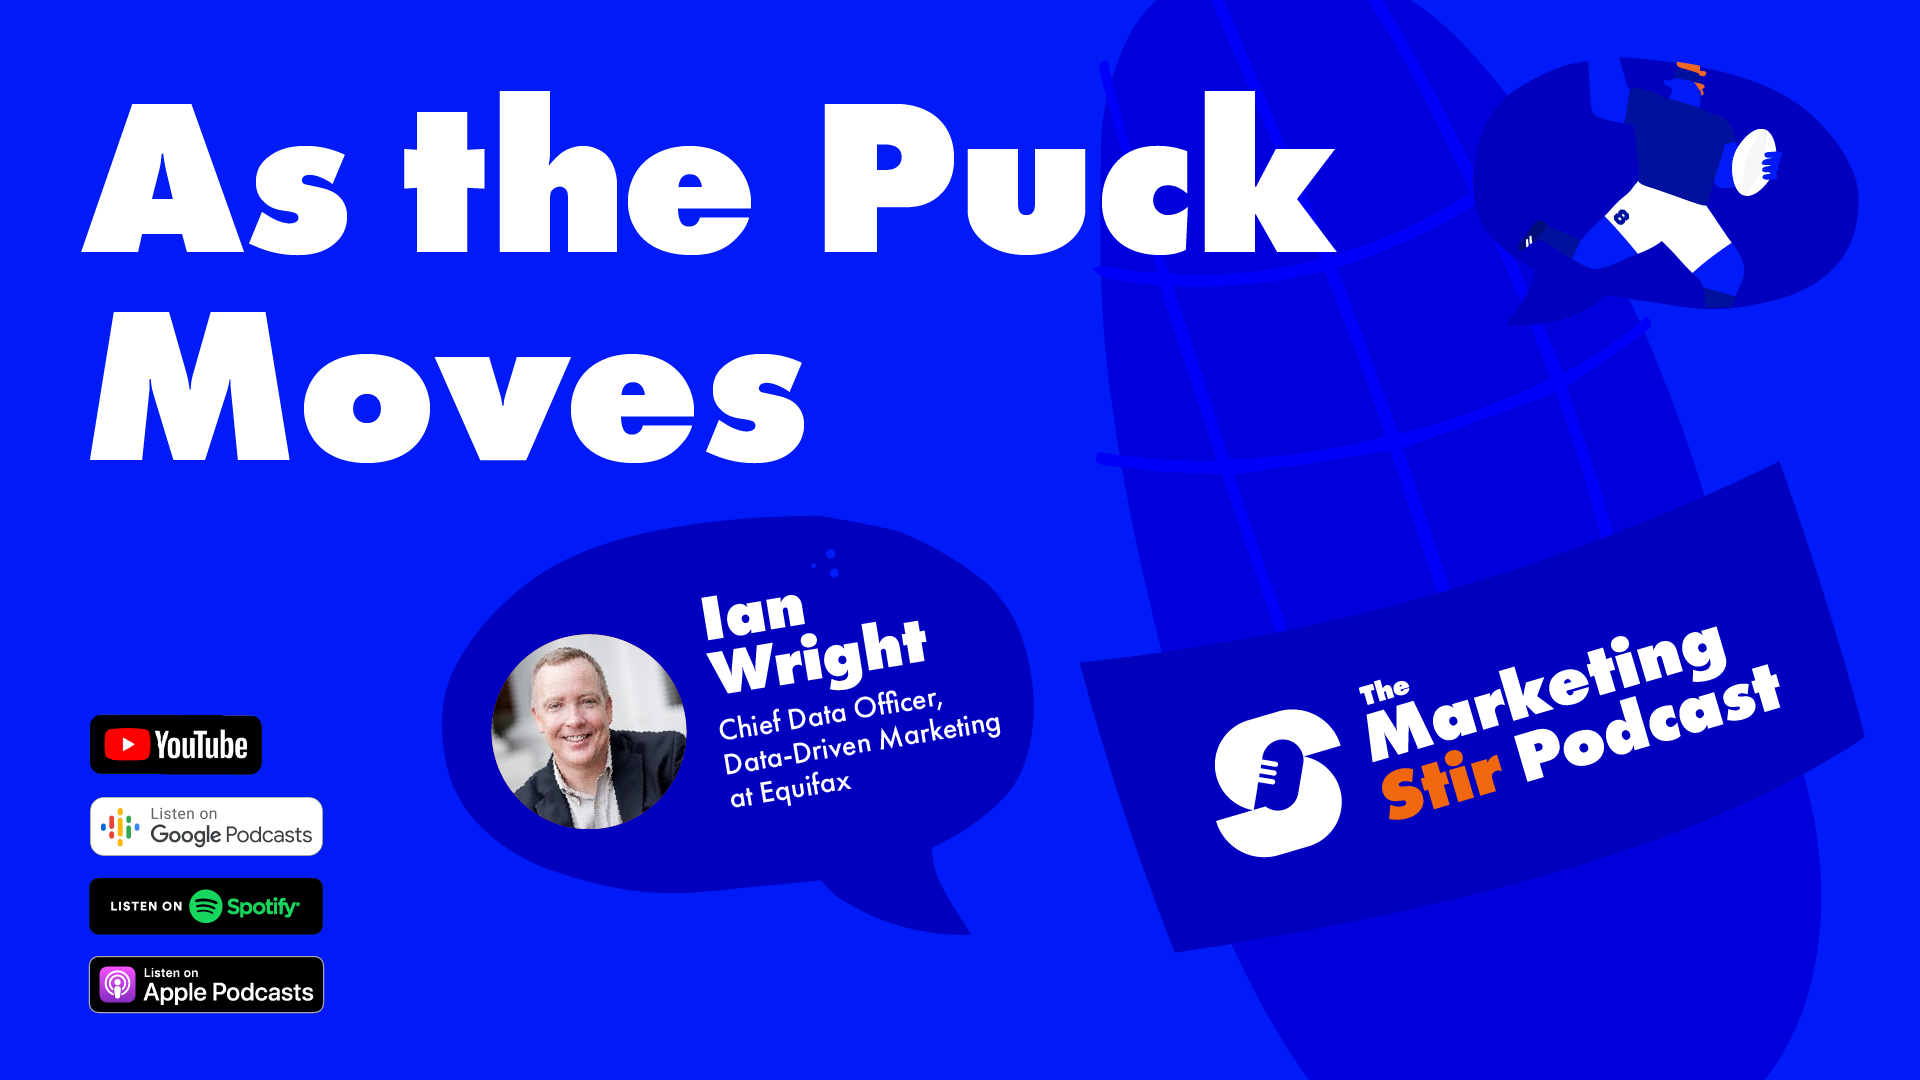 Ian Wright (Equifax) - As the Puck Moves